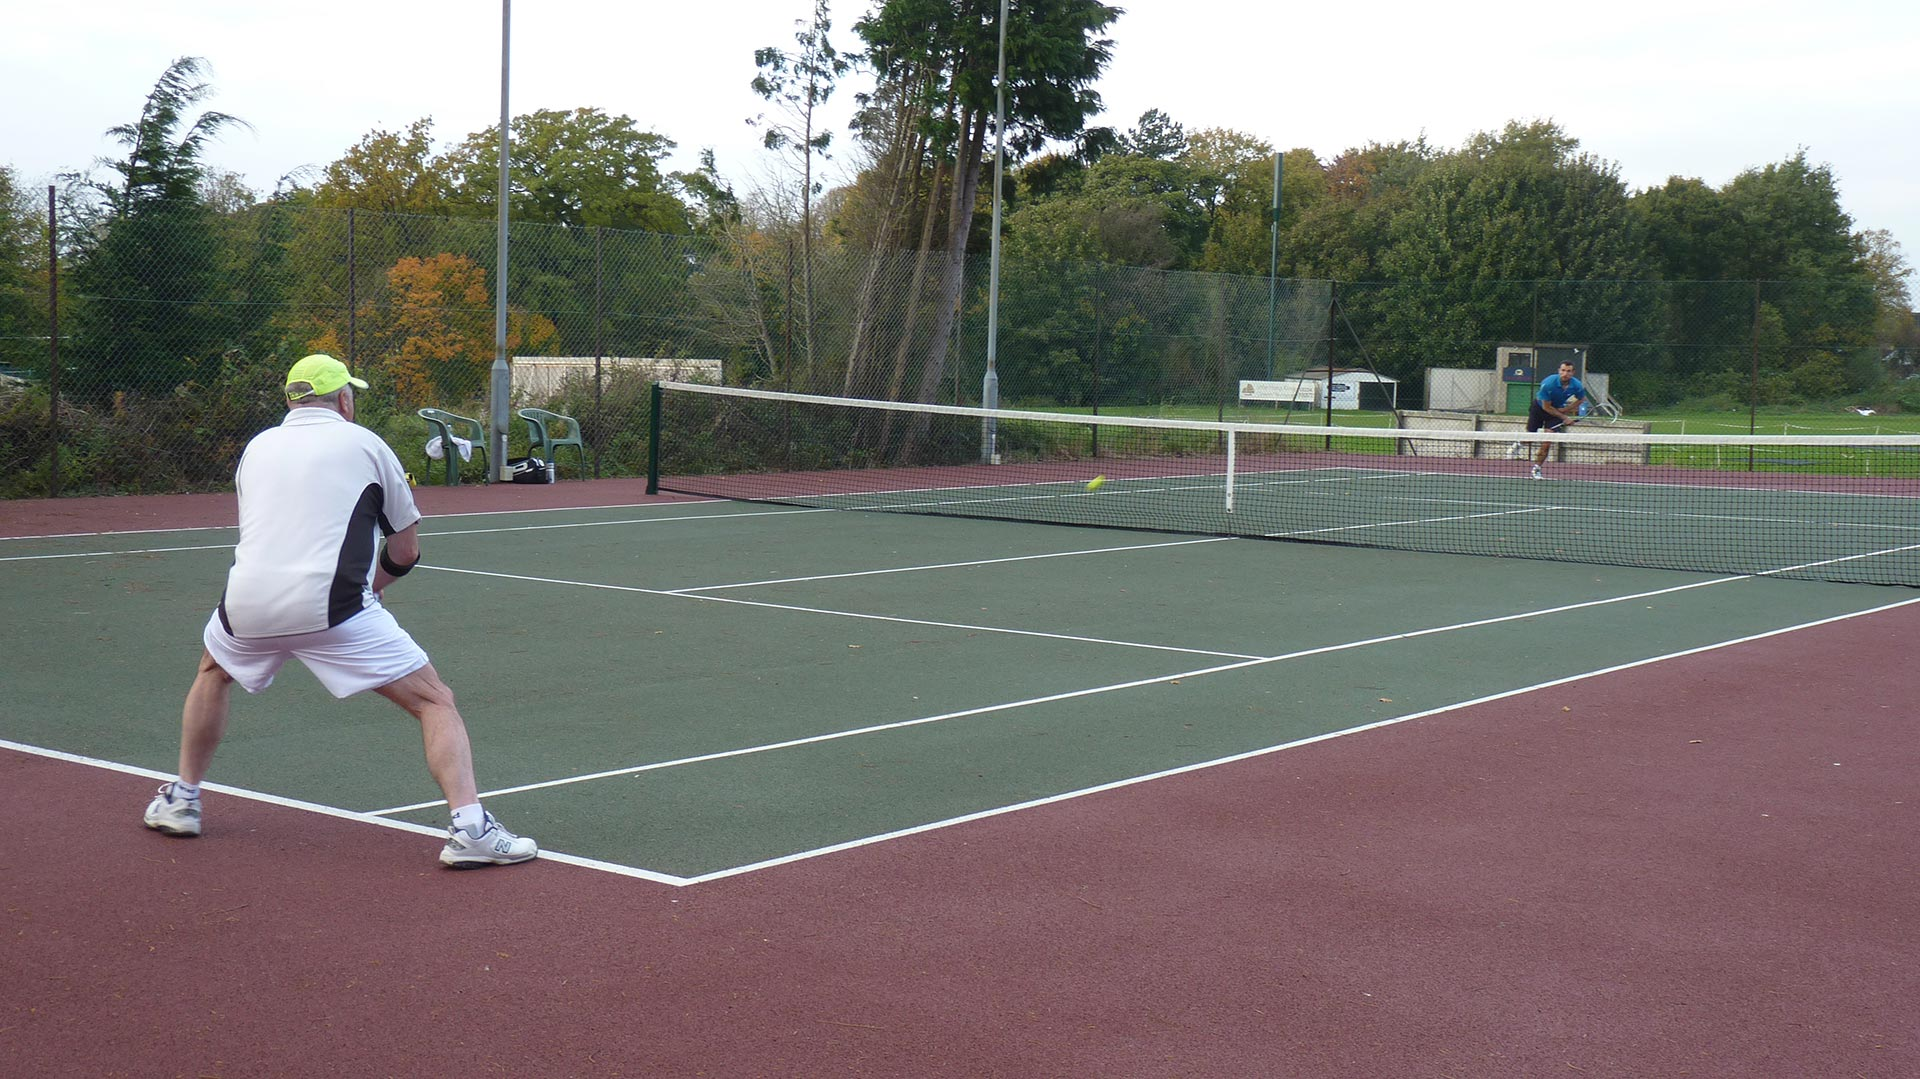 Social tennis - We have a thriving social tennis scene at the club.